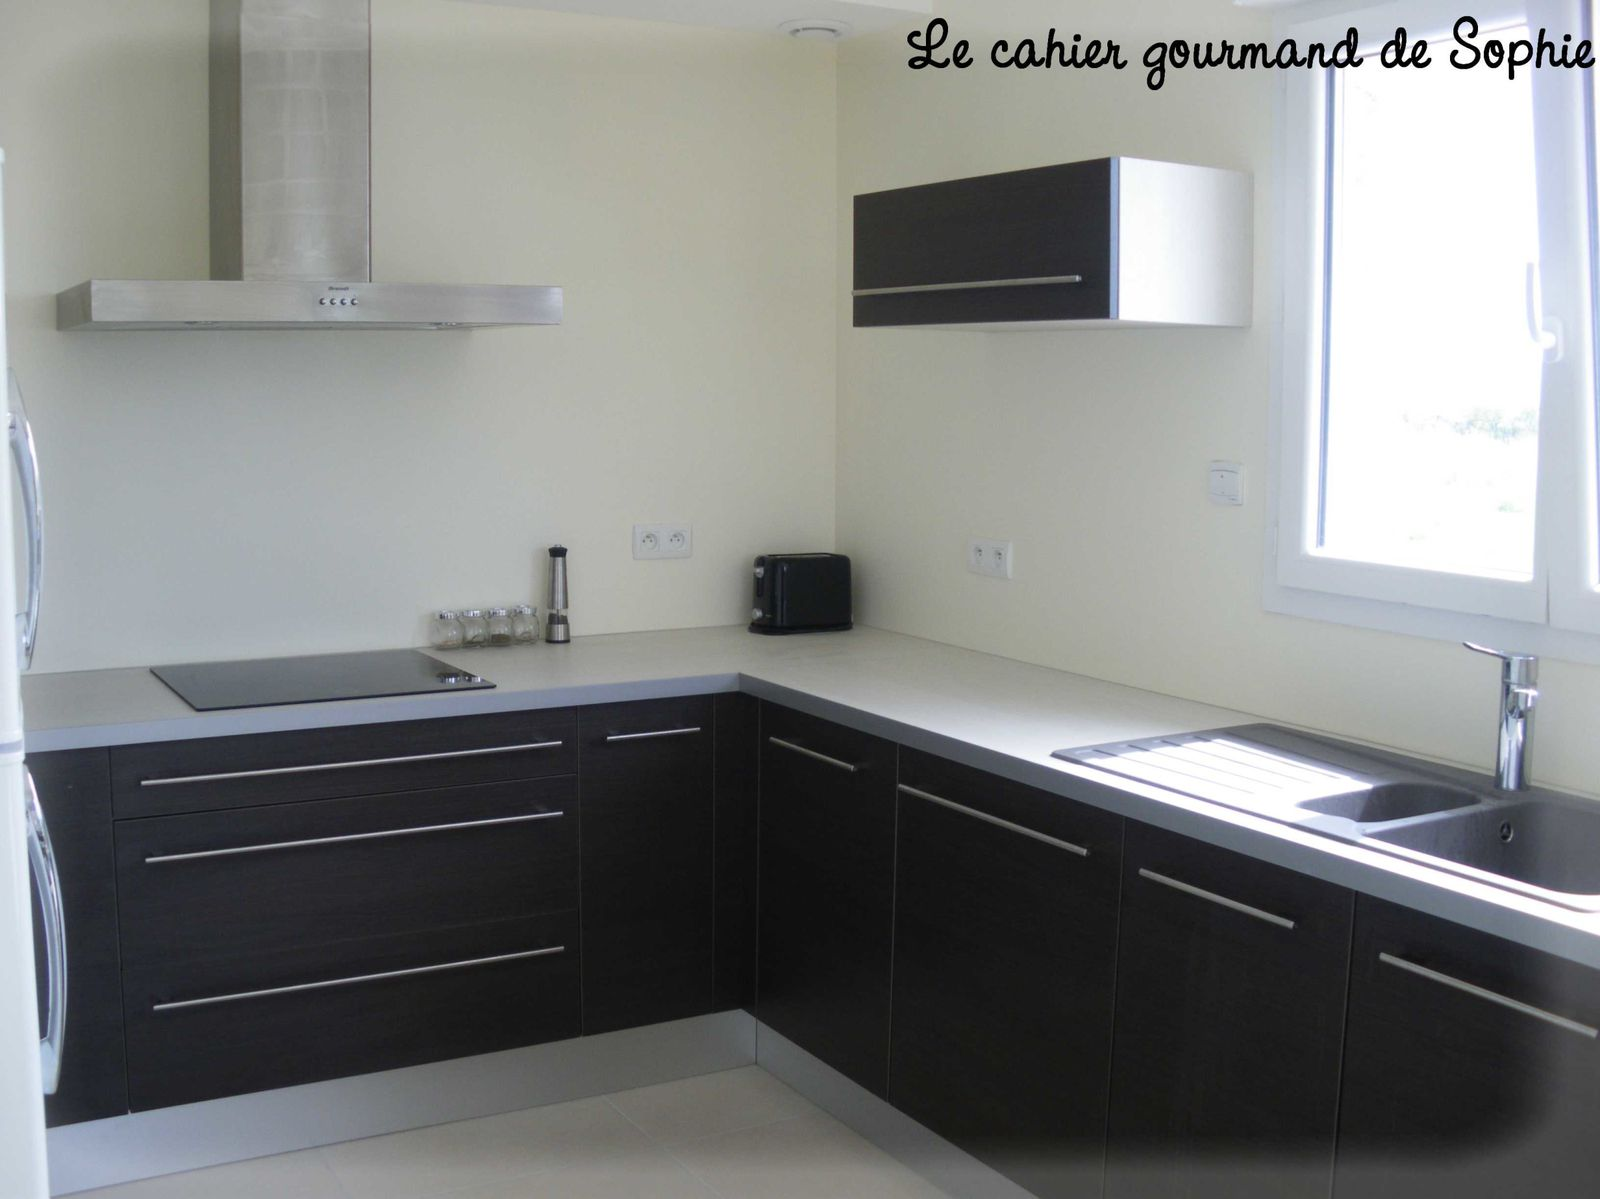 de retour avec ma nouvelle cuisine le cahier gourmand de sophie. Black Bedroom Furniture Sets. Home Design Ideas